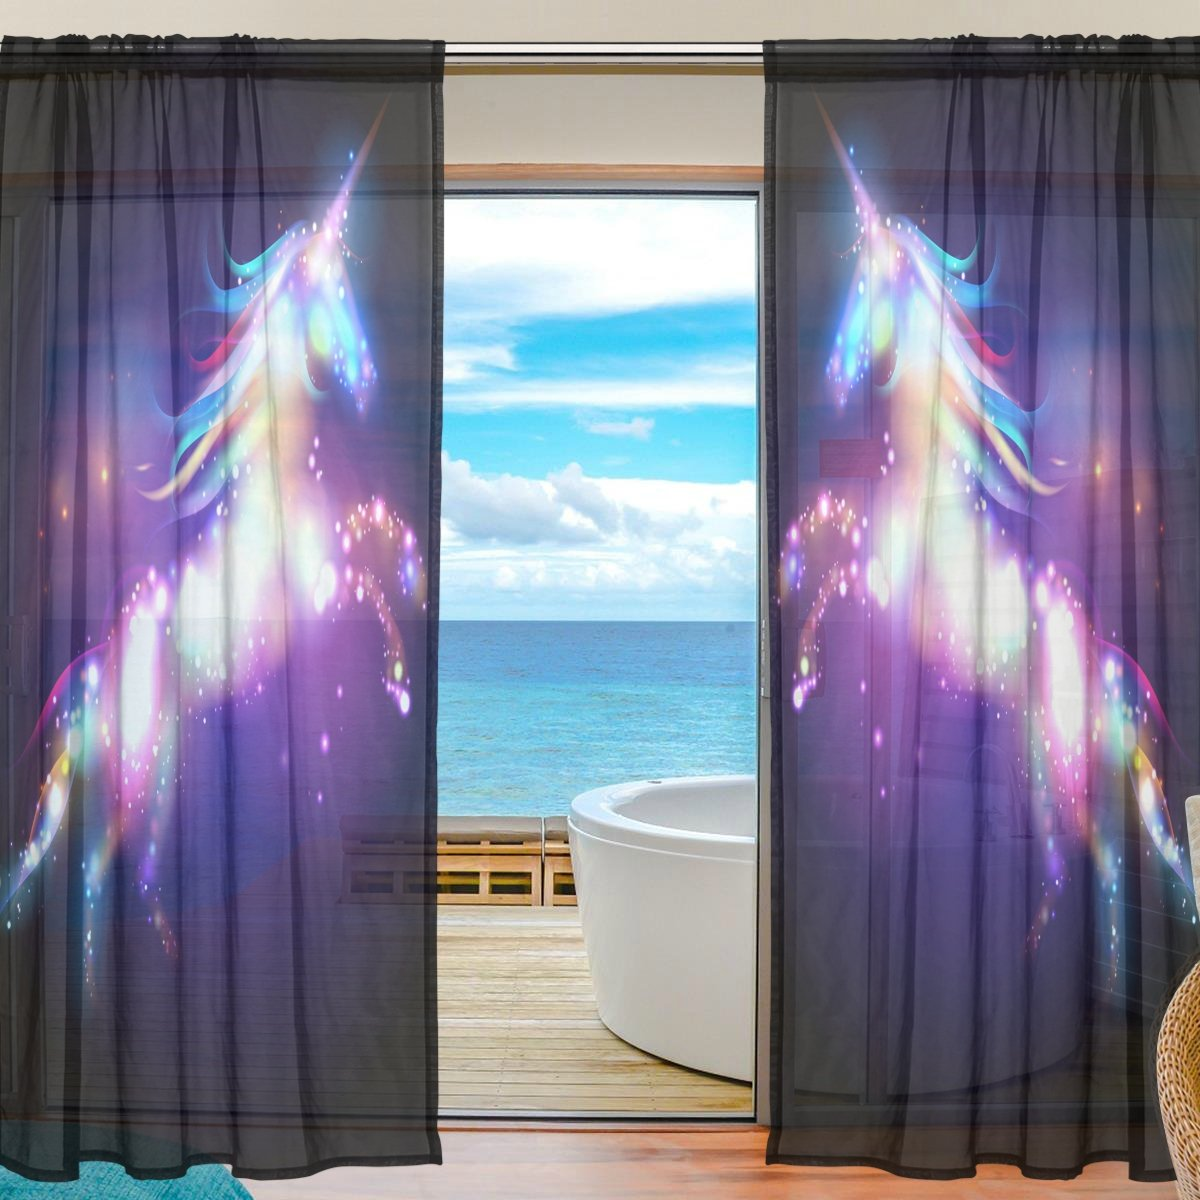 SEULIFE Window Sheer Curtain, Fantasy Animal Unicorn Glitter Voile Curtain Drapes for Door Kitchen Living Room Bedroom 55x78 inches 2 Panels g3307571p112c126s167